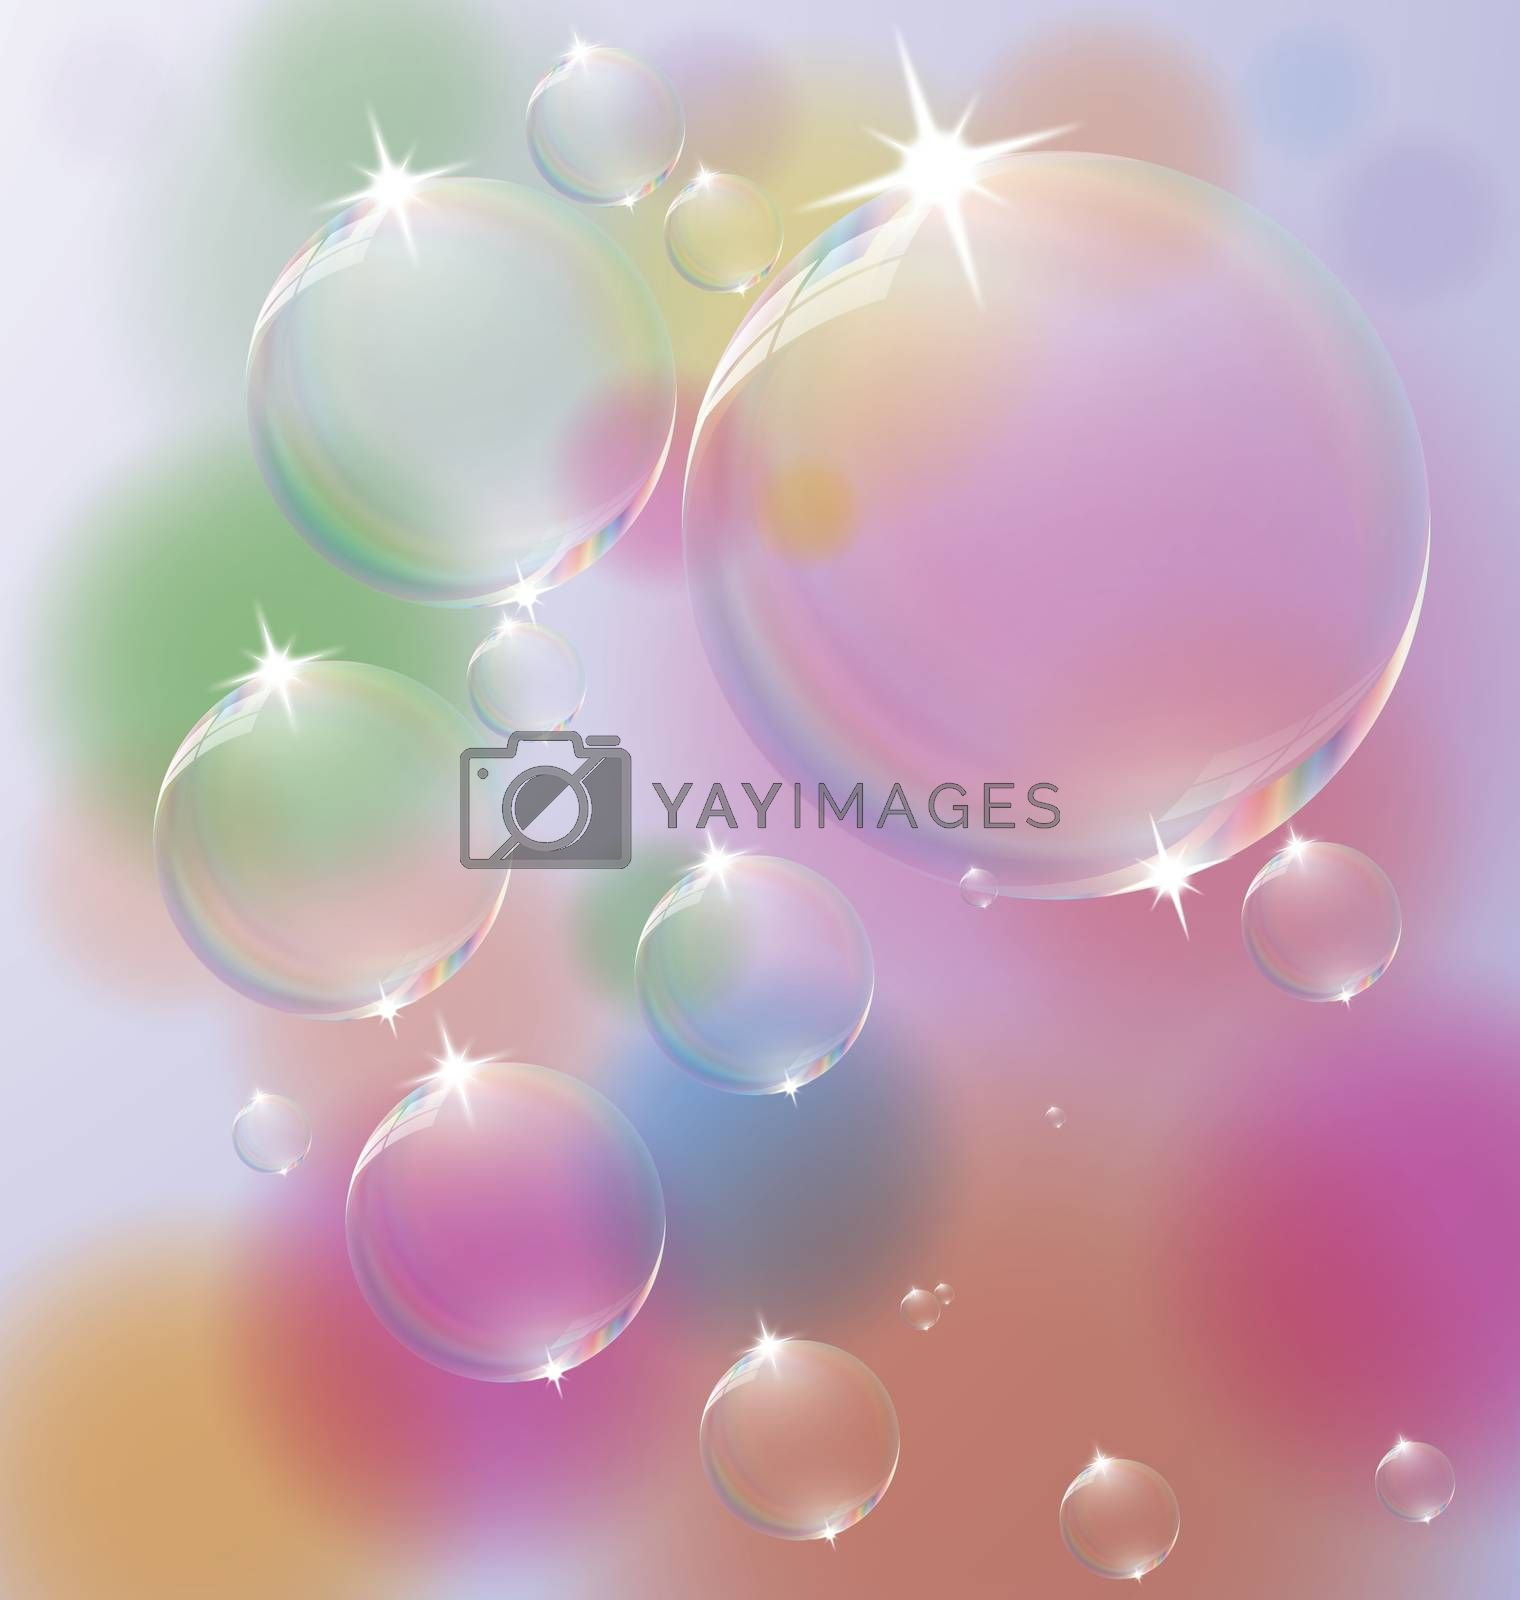 Colorful background with Soap Bubbles